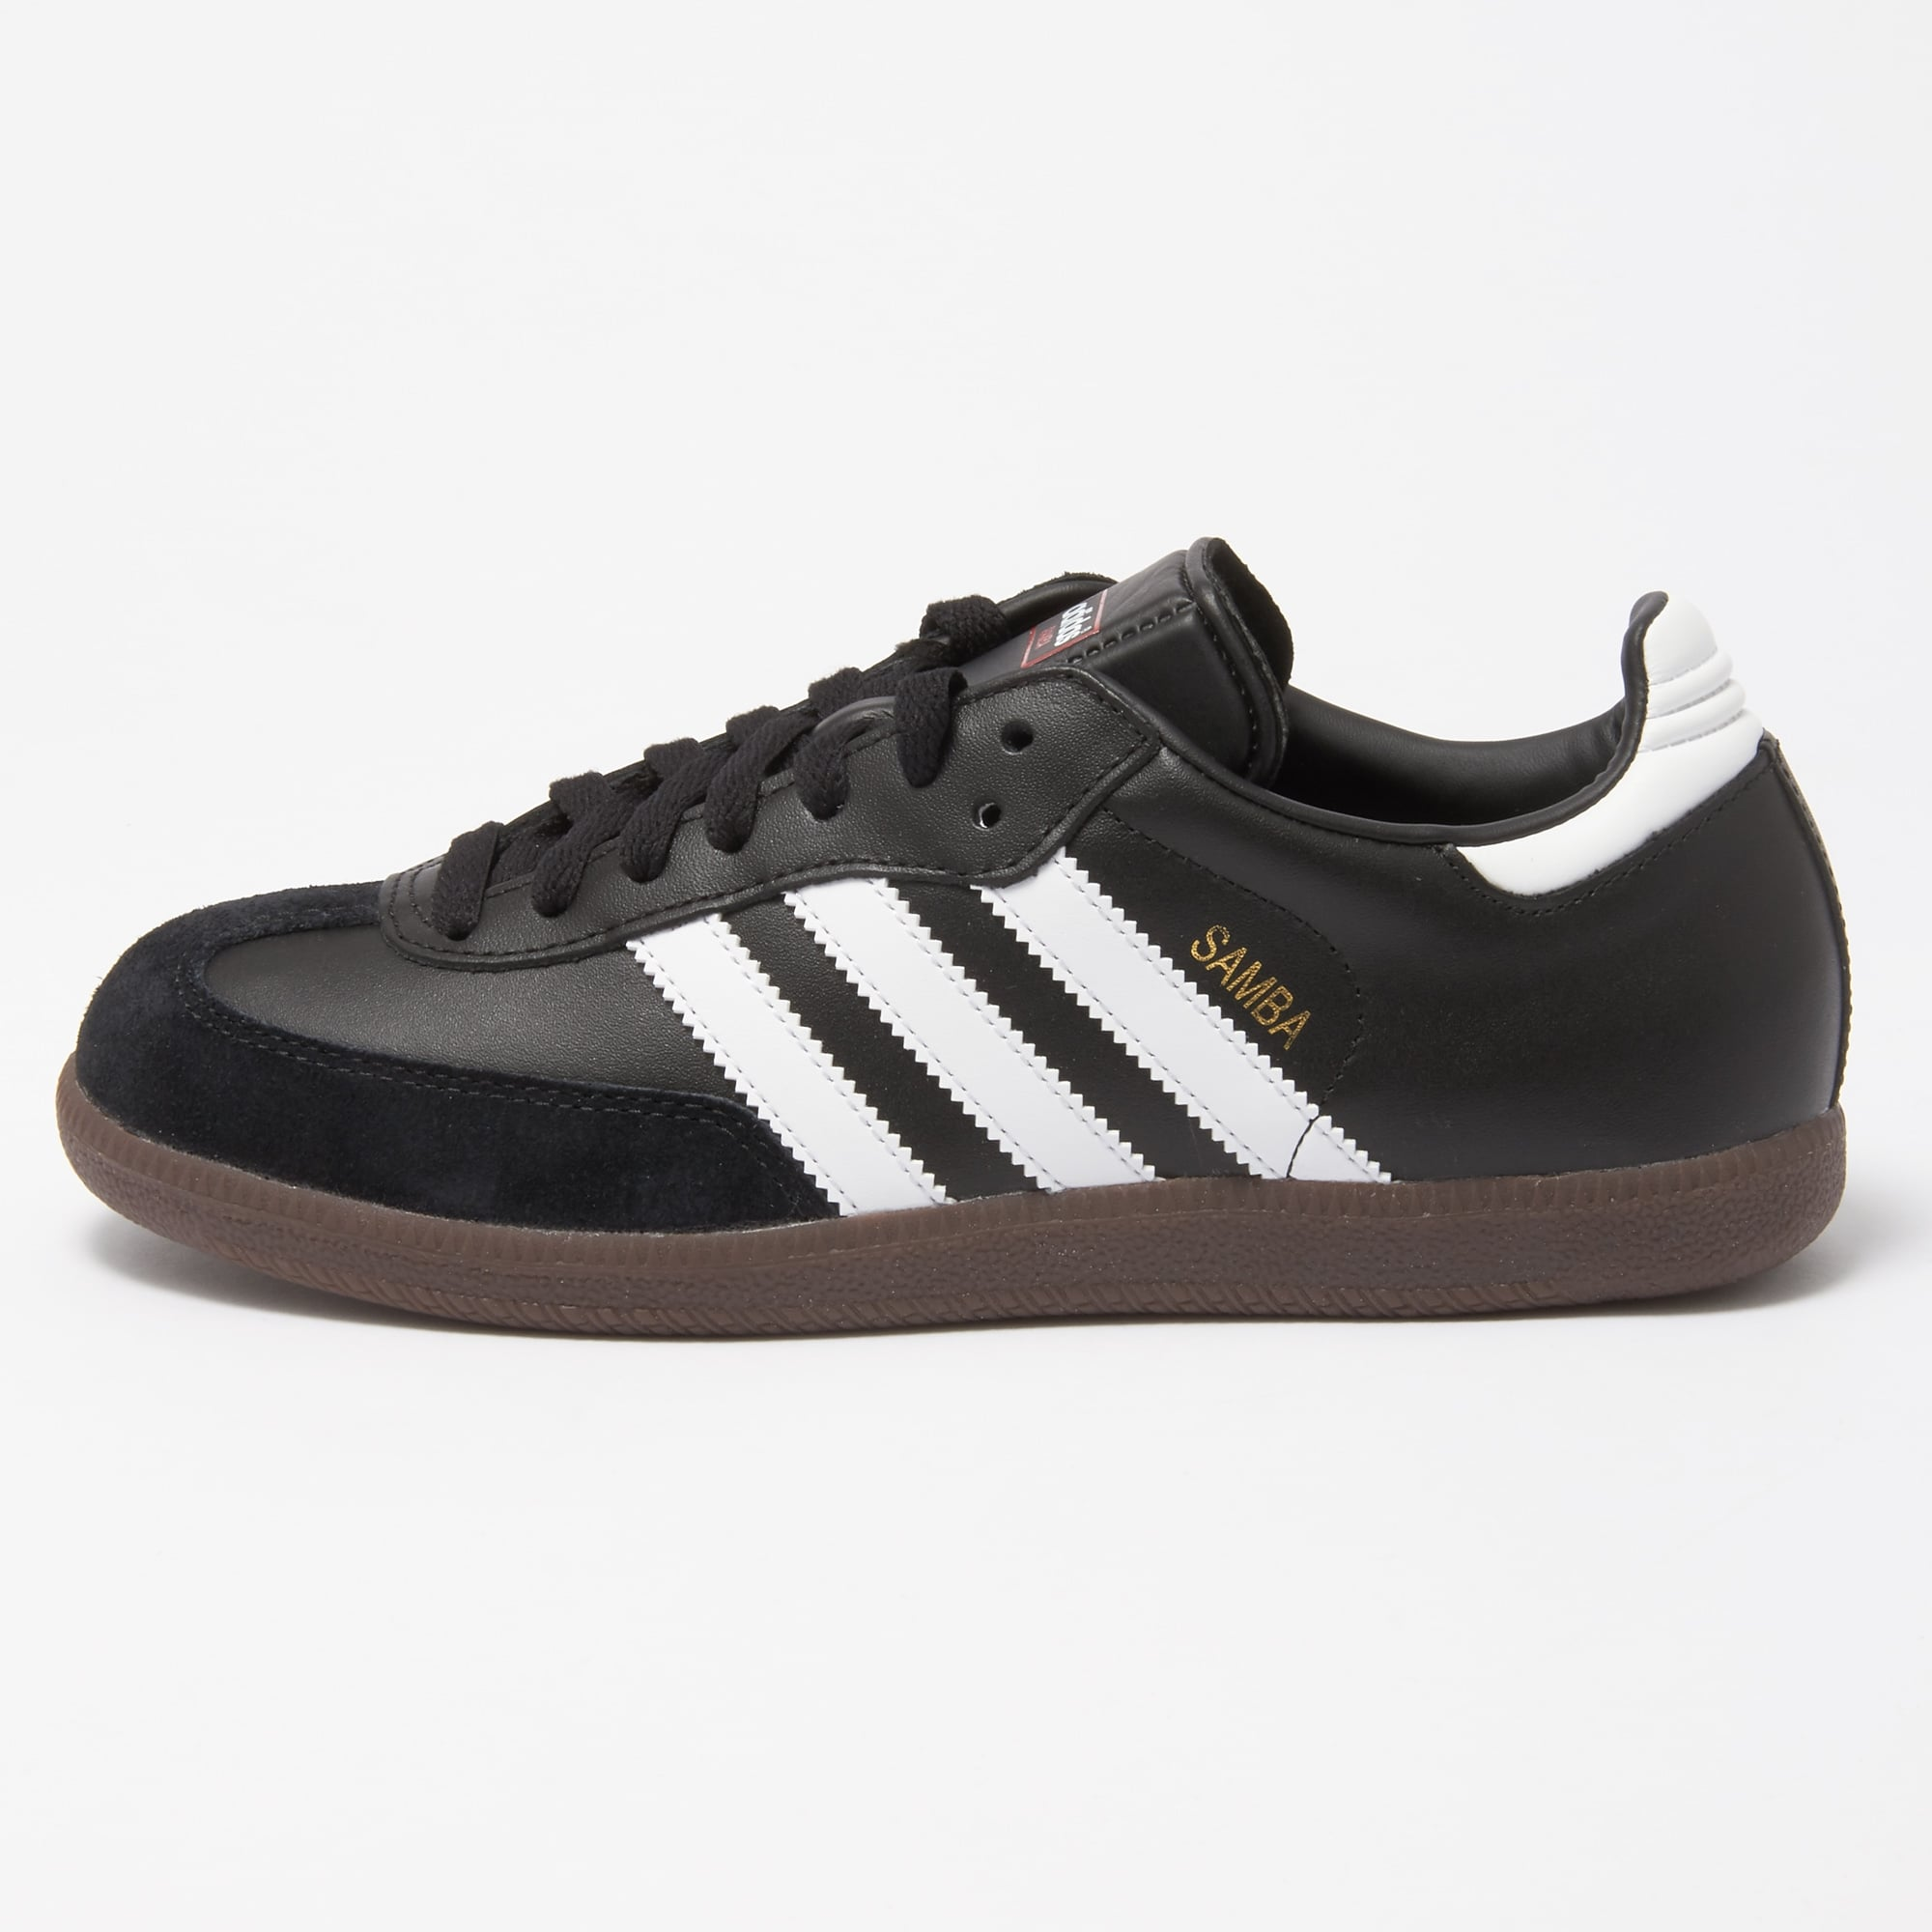 adidas leather shoes